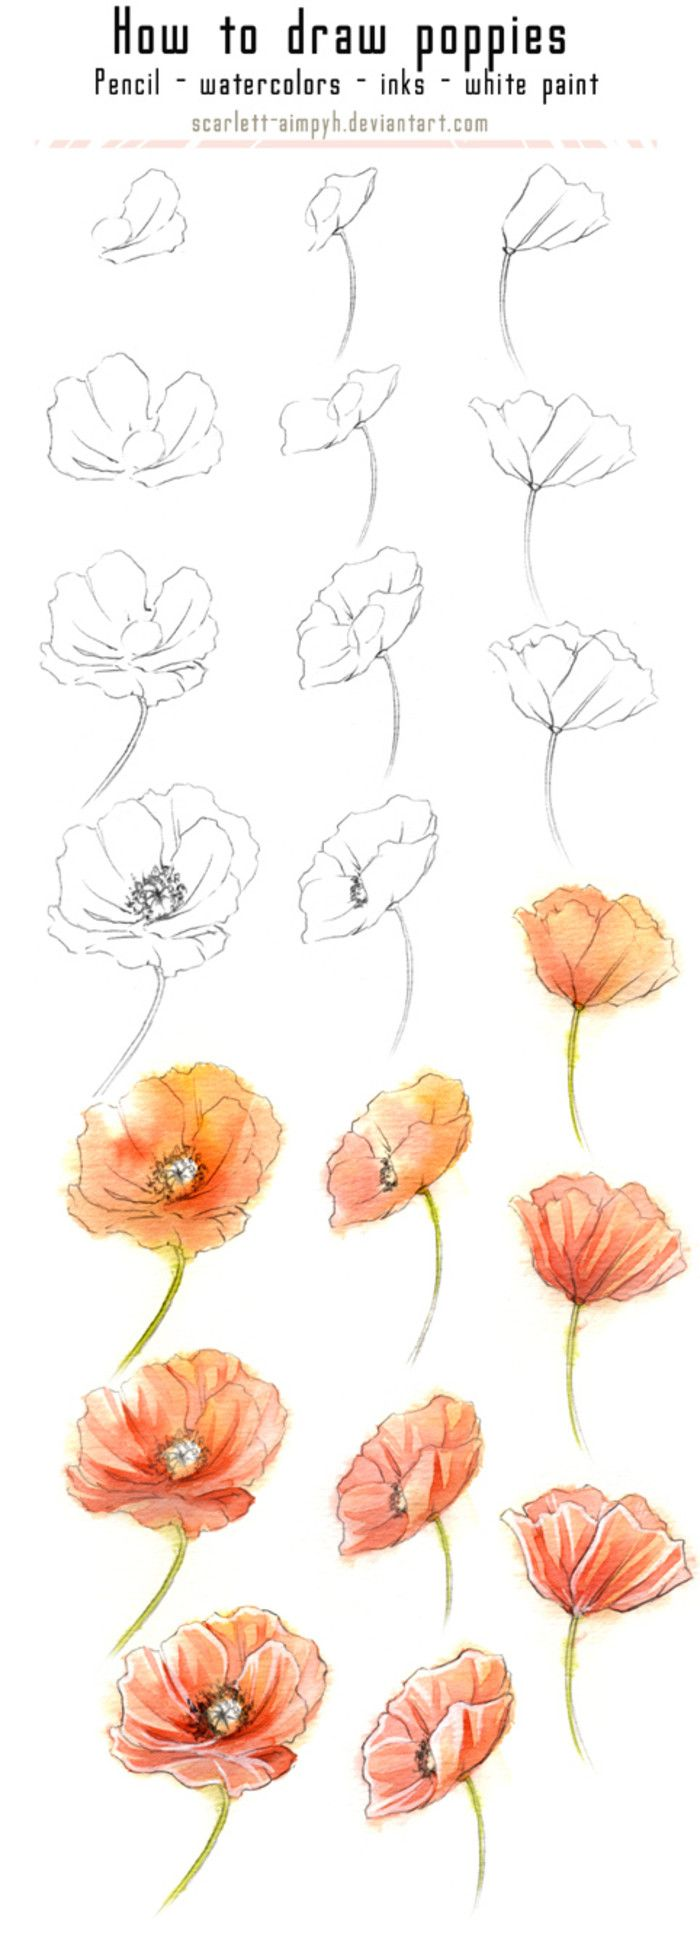 Uncategorized How To Draw Flower Step By Step best 25 how to draw flowers ideas on pinterest roses drawing beauty tip diy face masks 2017 2018 125 and paint poppies by scarlett aimpyh